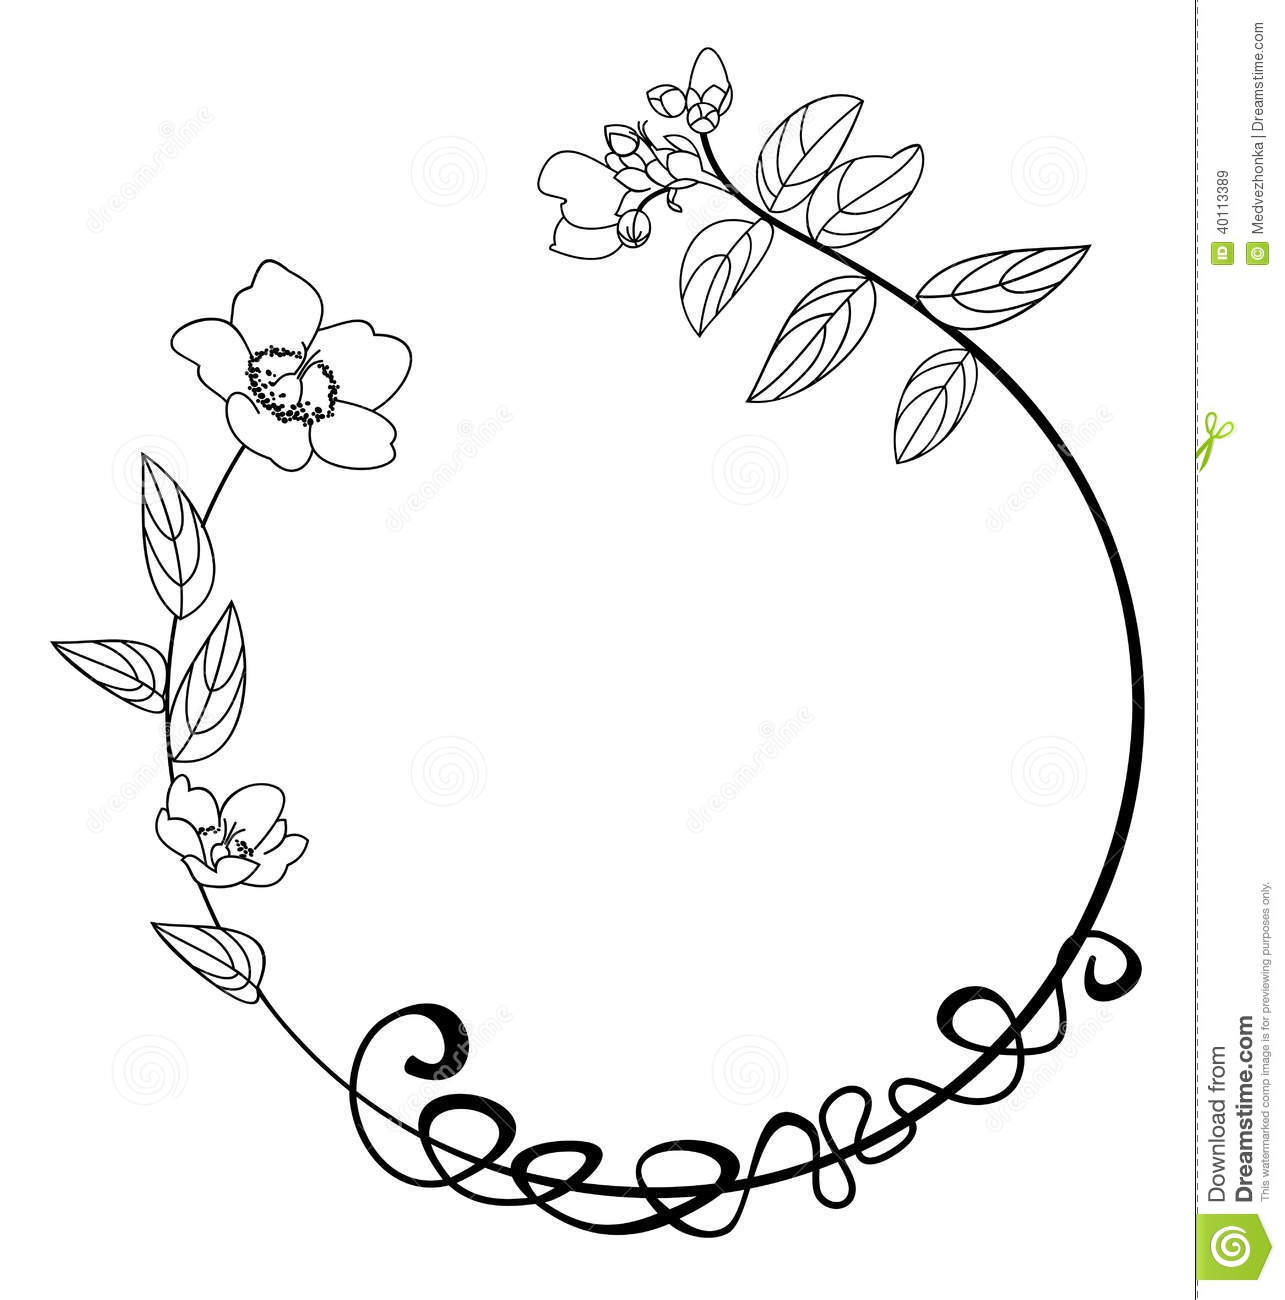 Flower Circle Line Drawing : Cadre rond de fleur illustration vecteur image